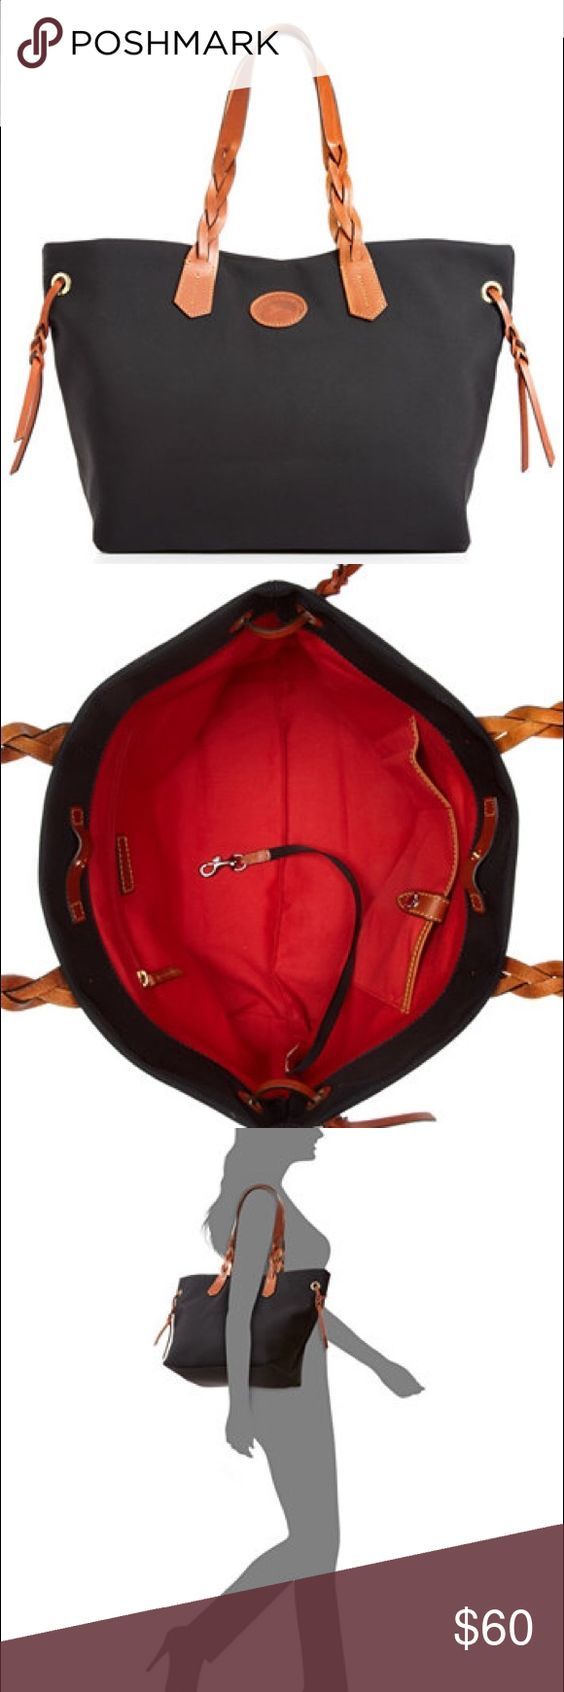 Dooney & Bourke Nylon and leather Shopper Tote Black nylon tote bag with beautiful cognac leather straps. Used only a 3 times for travel! Great bag with beautiful red lining! Almost brand new great condition! Still in stores! Dooney & Bourke Bags Totes